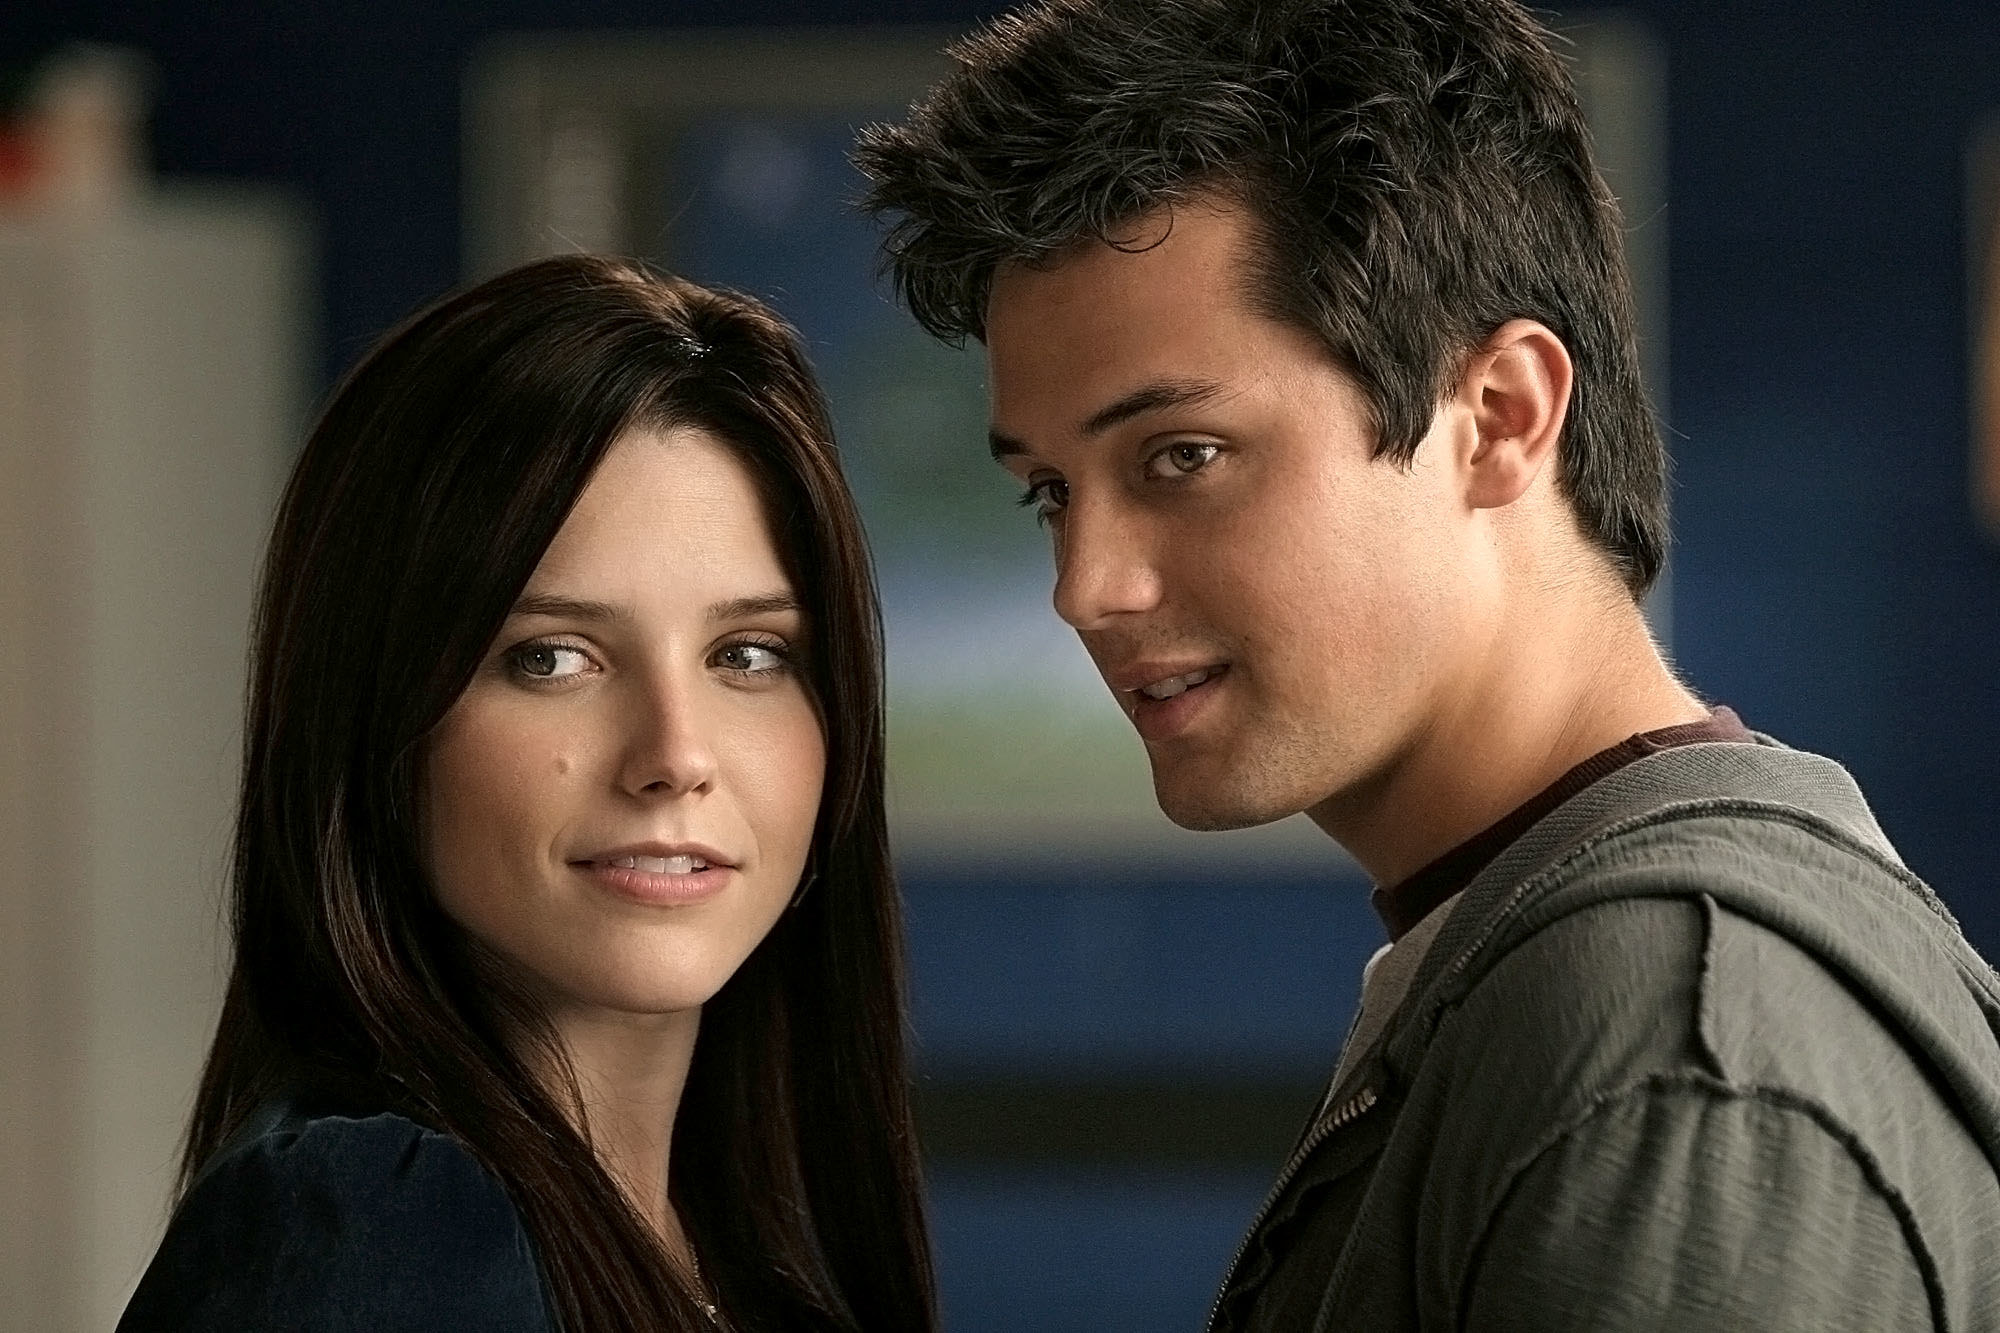 On the set of One Tree Hill, actors Sophia Bush and Stephen Colletti smirk, both looking off to the left